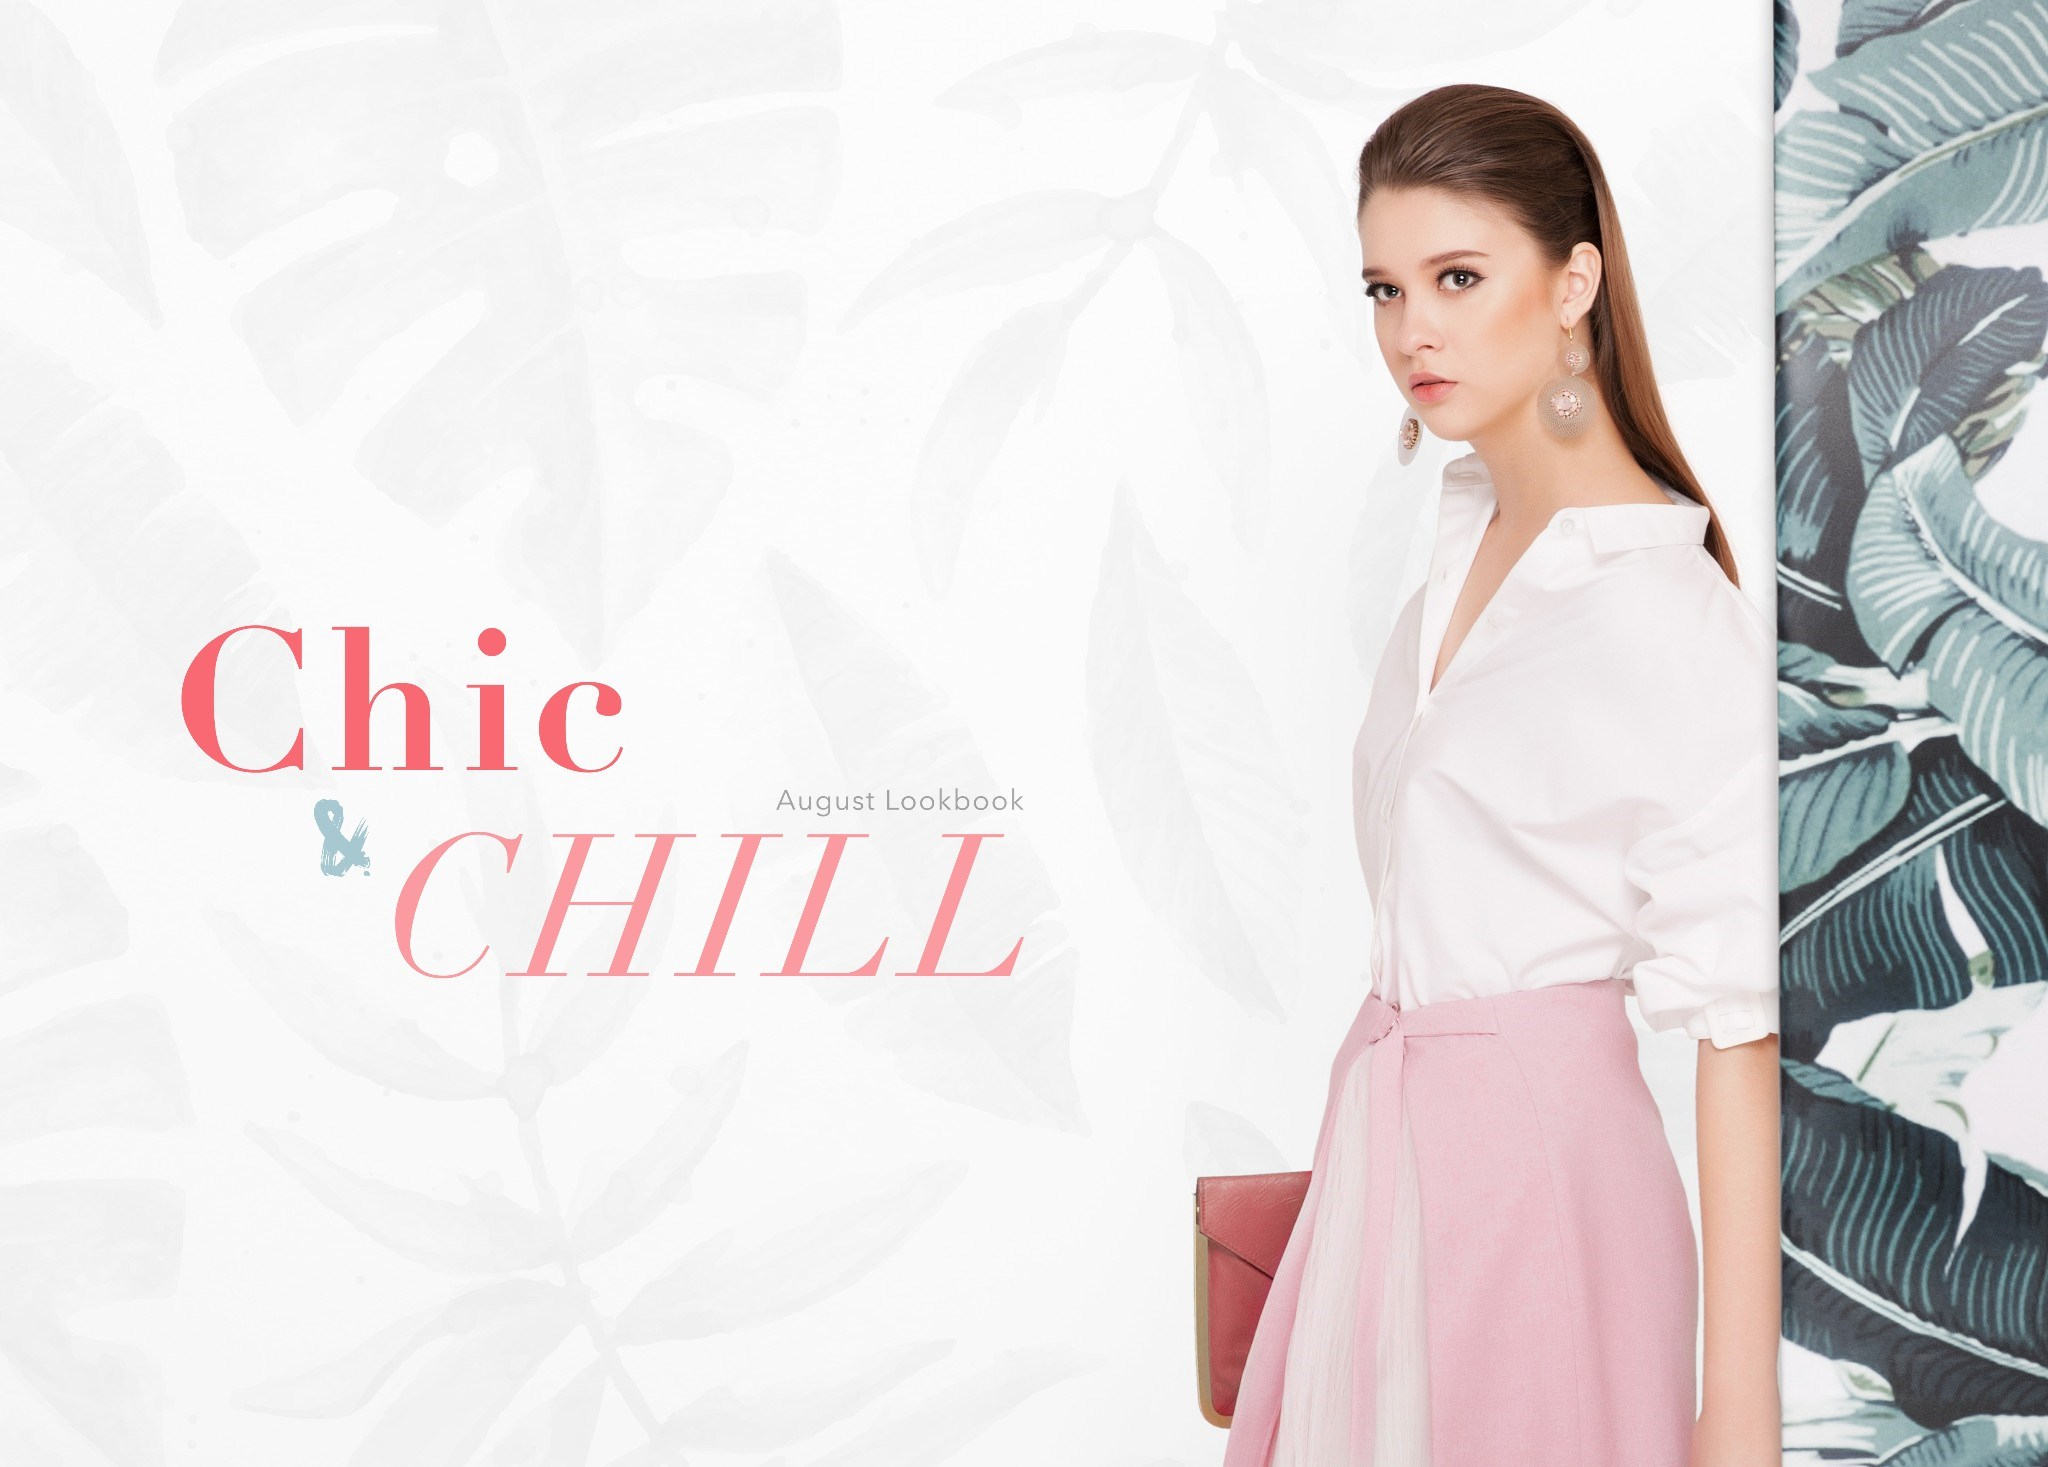 AUGUST LOOKBOOK: CHIC & CHILL